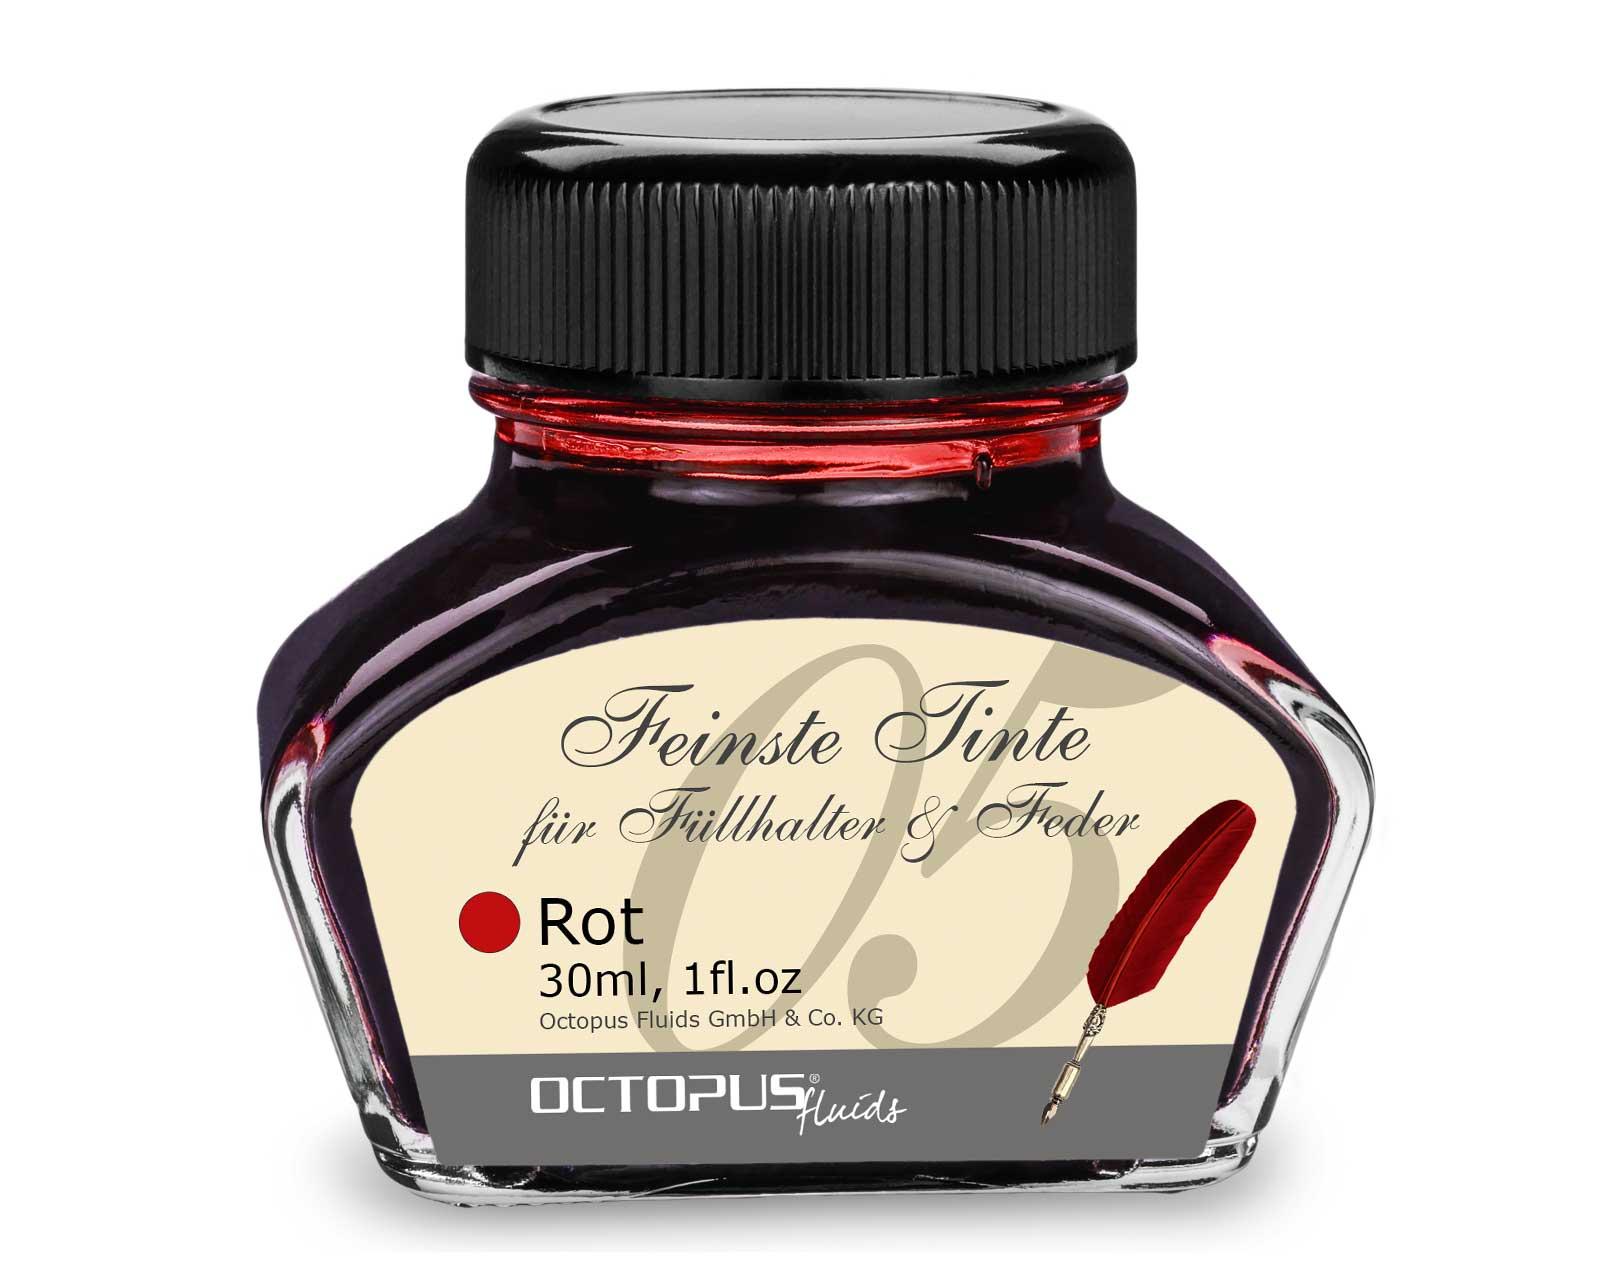 Fountain pen ink, writing ink for fountain pen, fountain pen ink Red